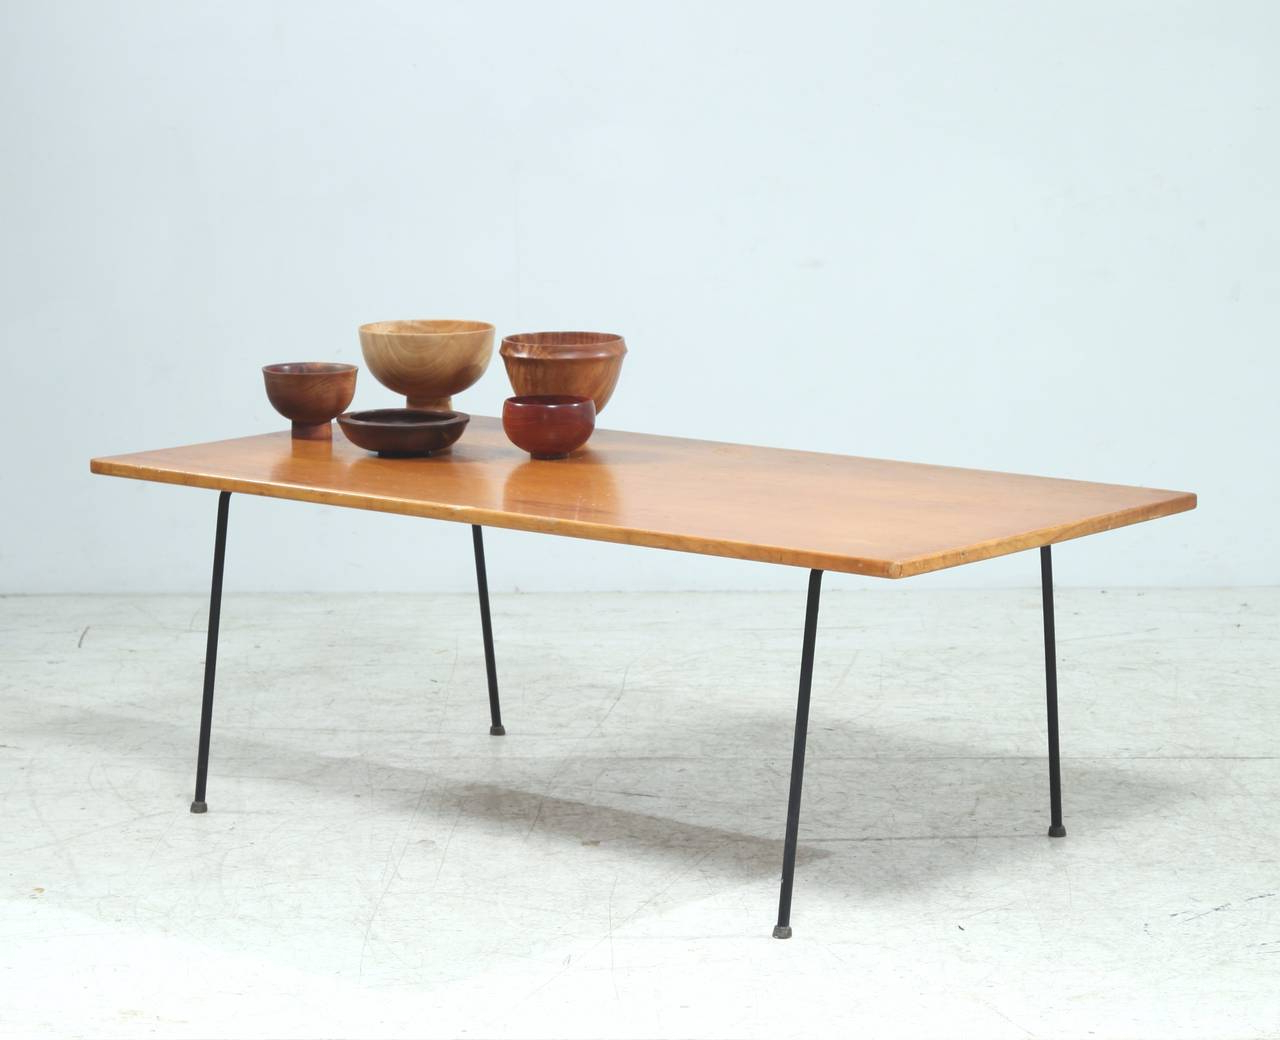 Minimalist Arden Riddle Coffee Table For Sale At 1Stdibs Regarding 2019 Minimalist Coffee Tables (View 6 of 20)